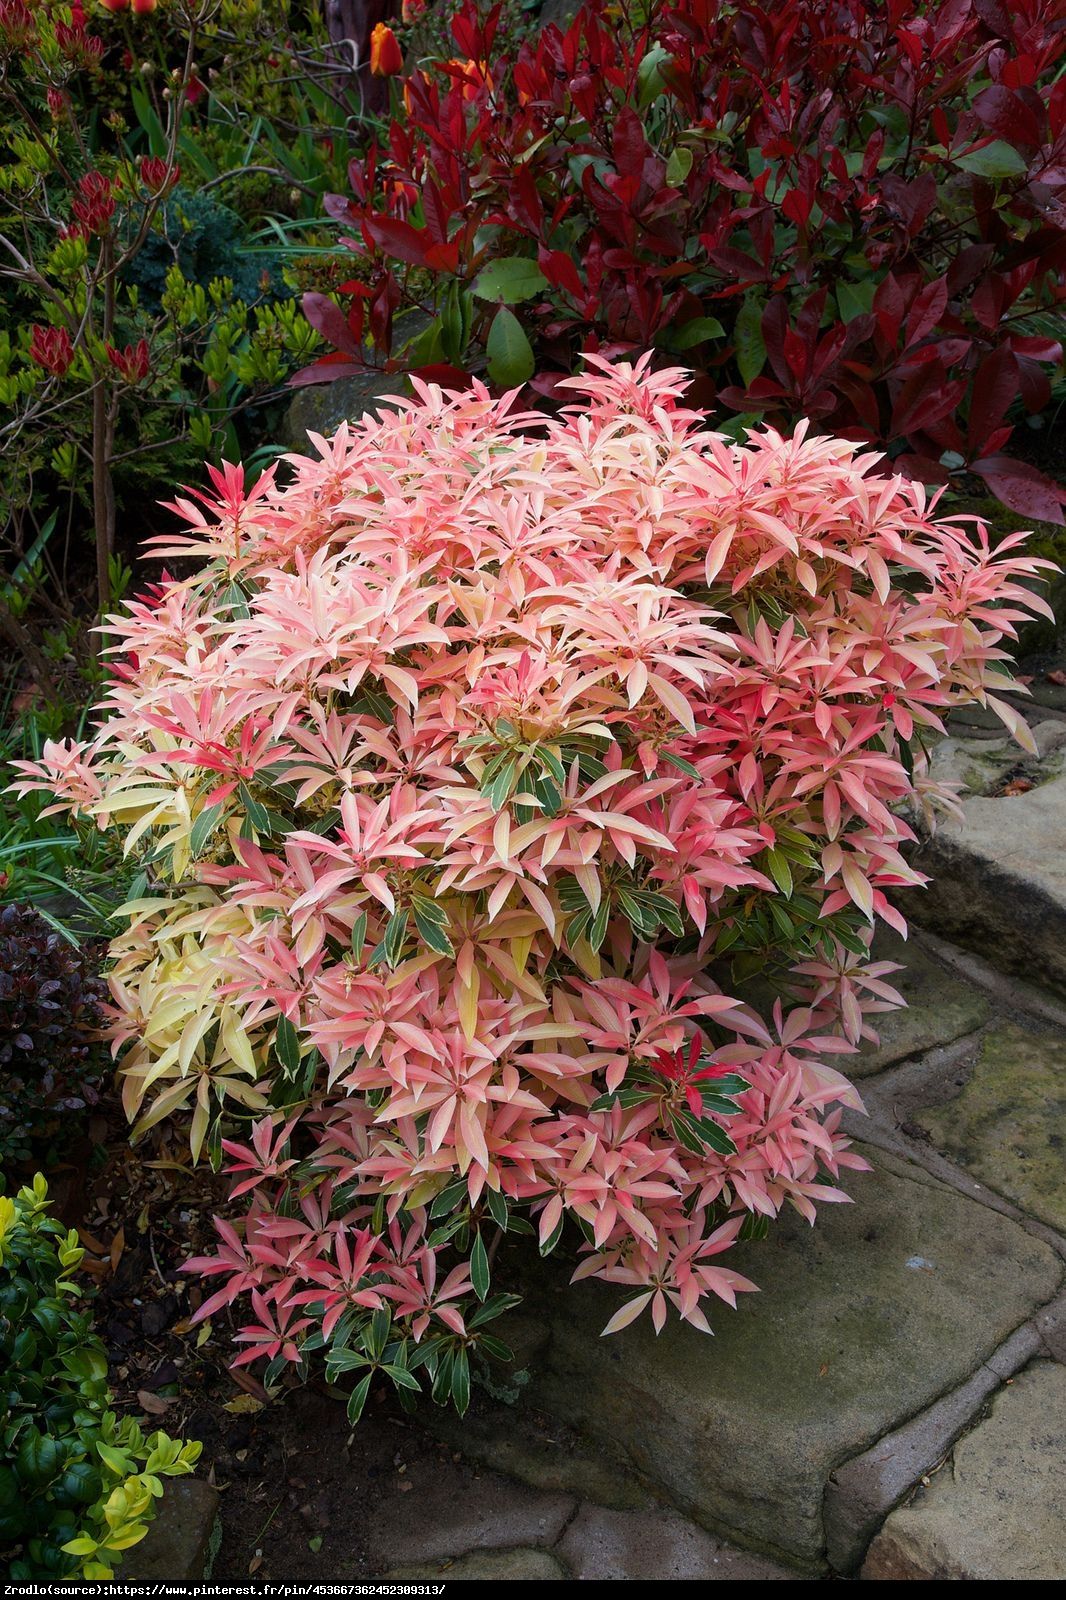 Pieris japoński Flaming Silver - Piersi japonica Flaming Silver